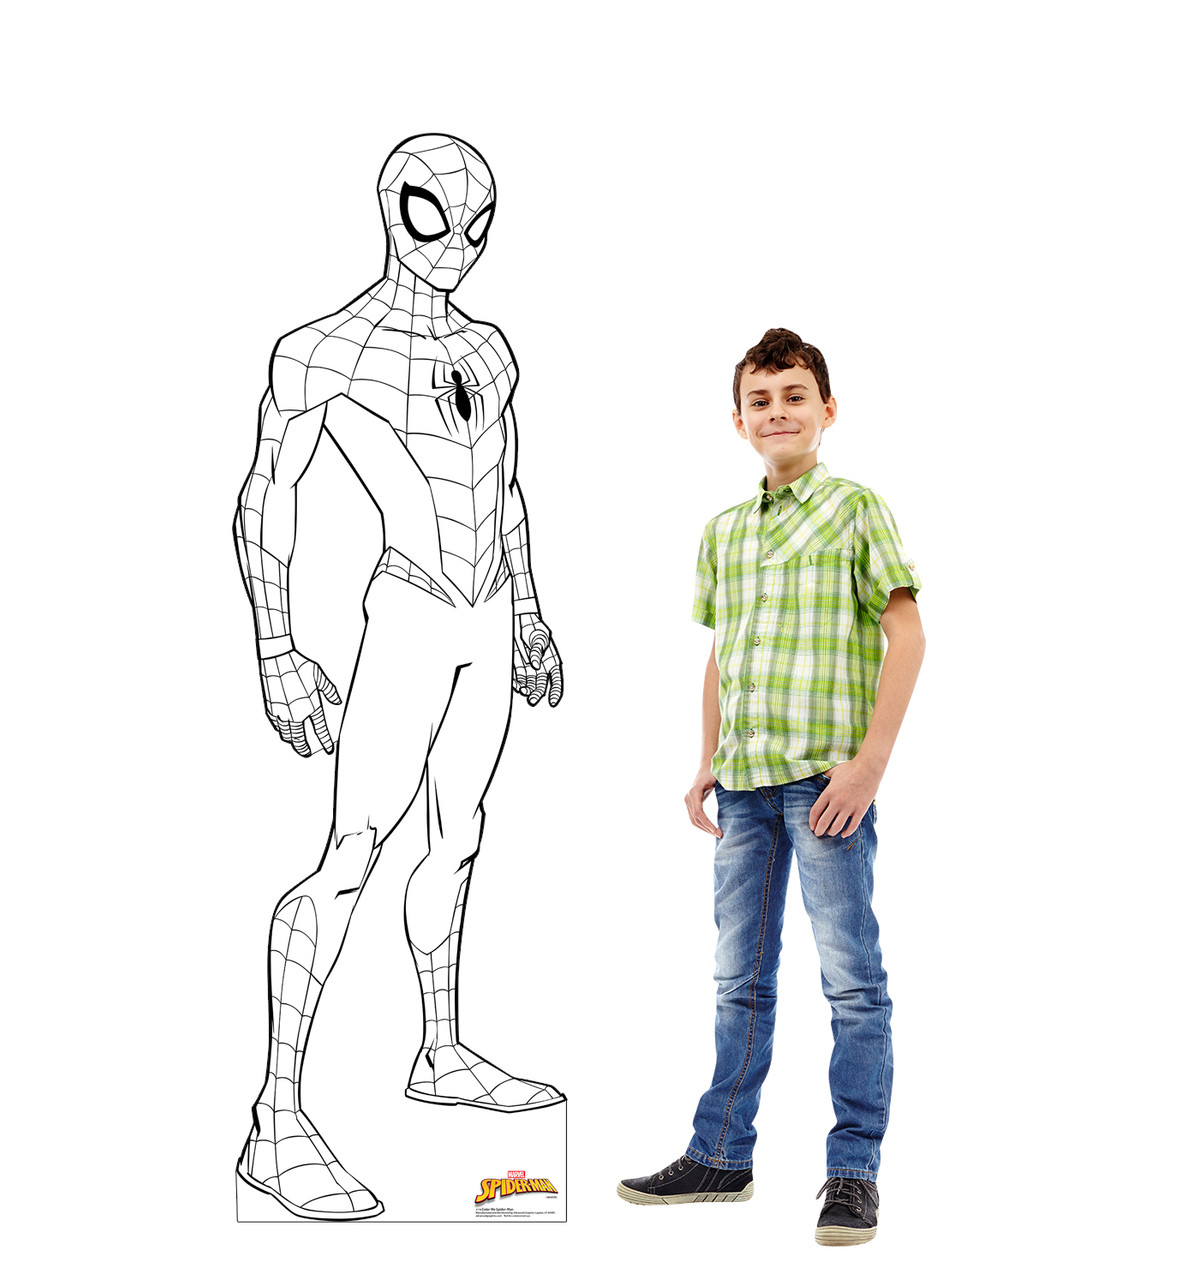 Life-size cardboard standee of Color Me Spider-Man from Marvel with model.